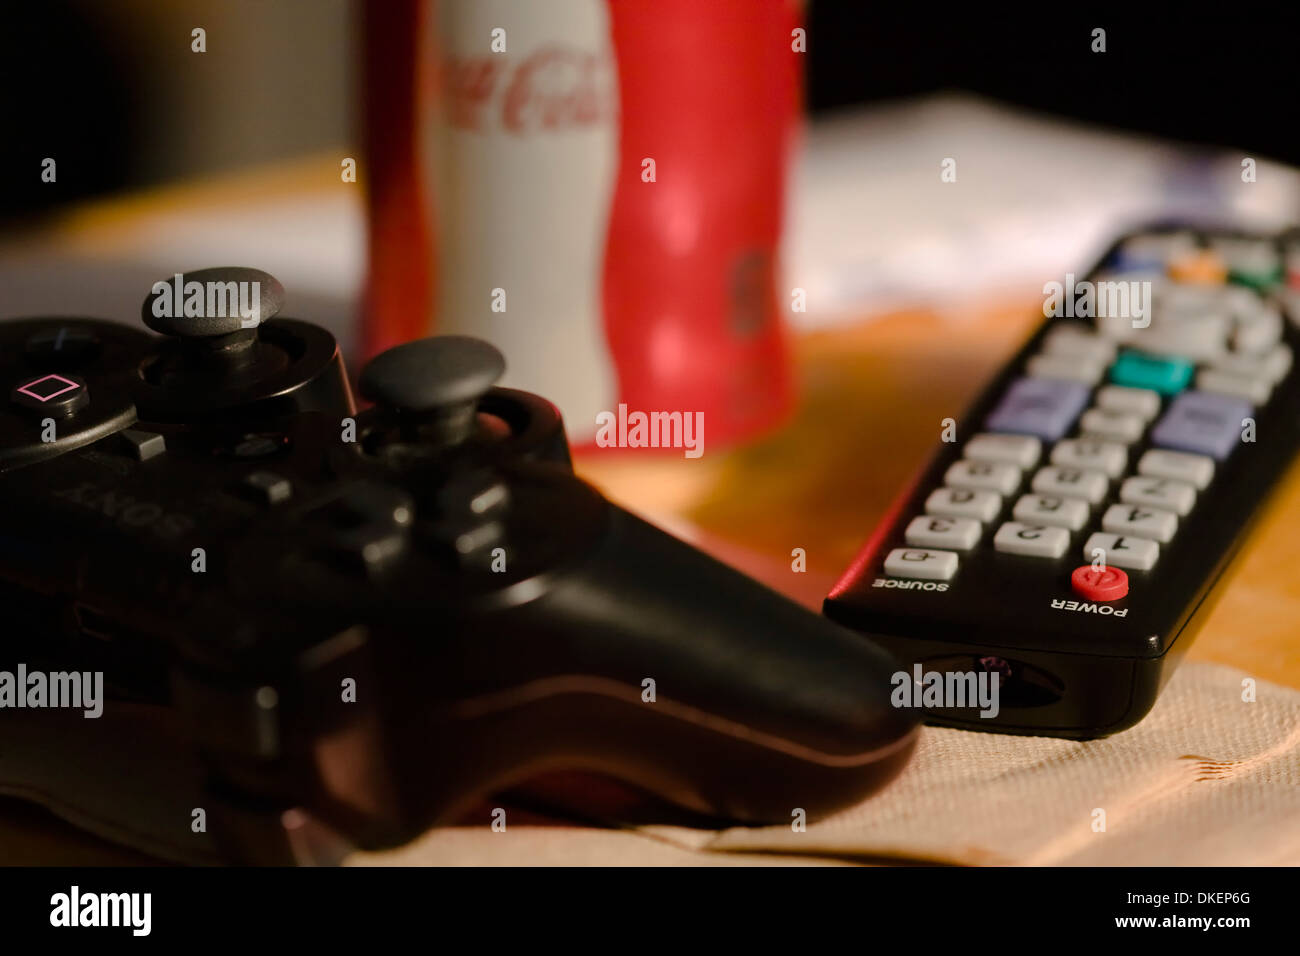 Television Remote Control with Play Station 3 Video Game Controller and single can of Coke on table - Stock Image